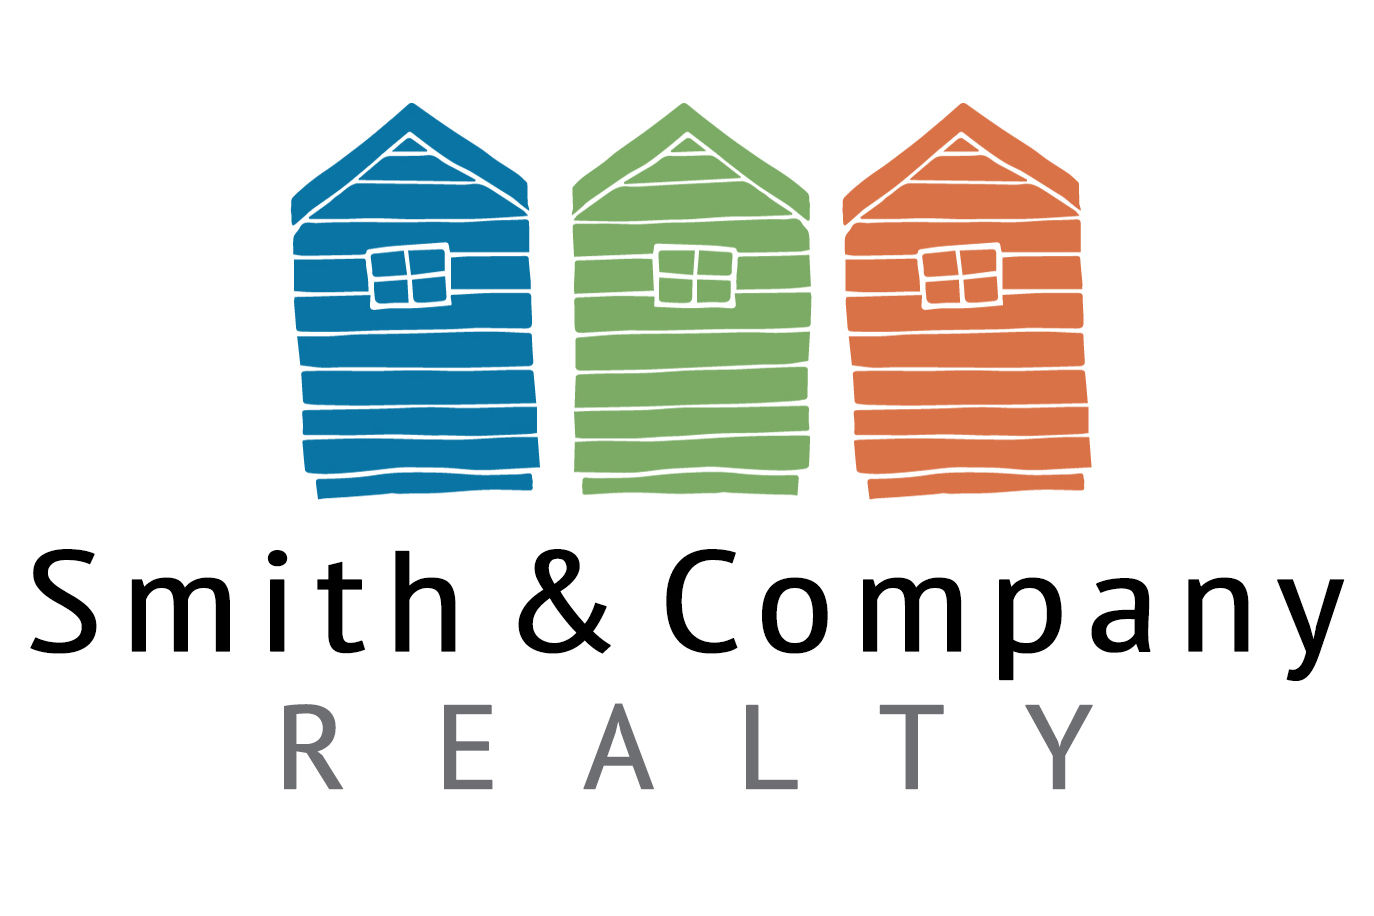 Smith & Company Realty